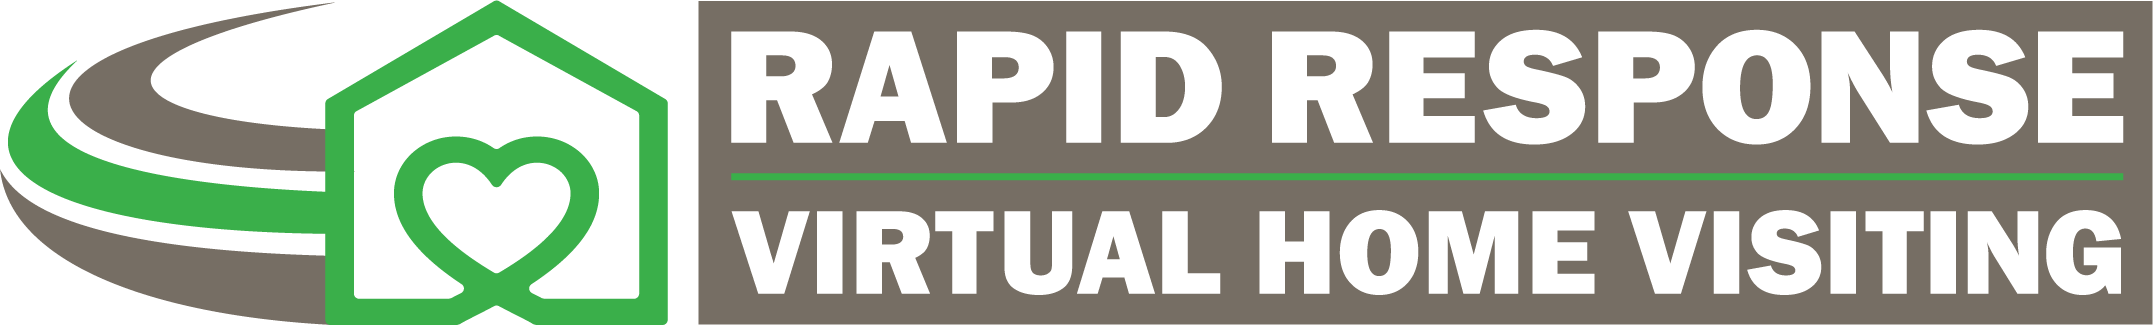 Rapid Response Virtual Home Visiting